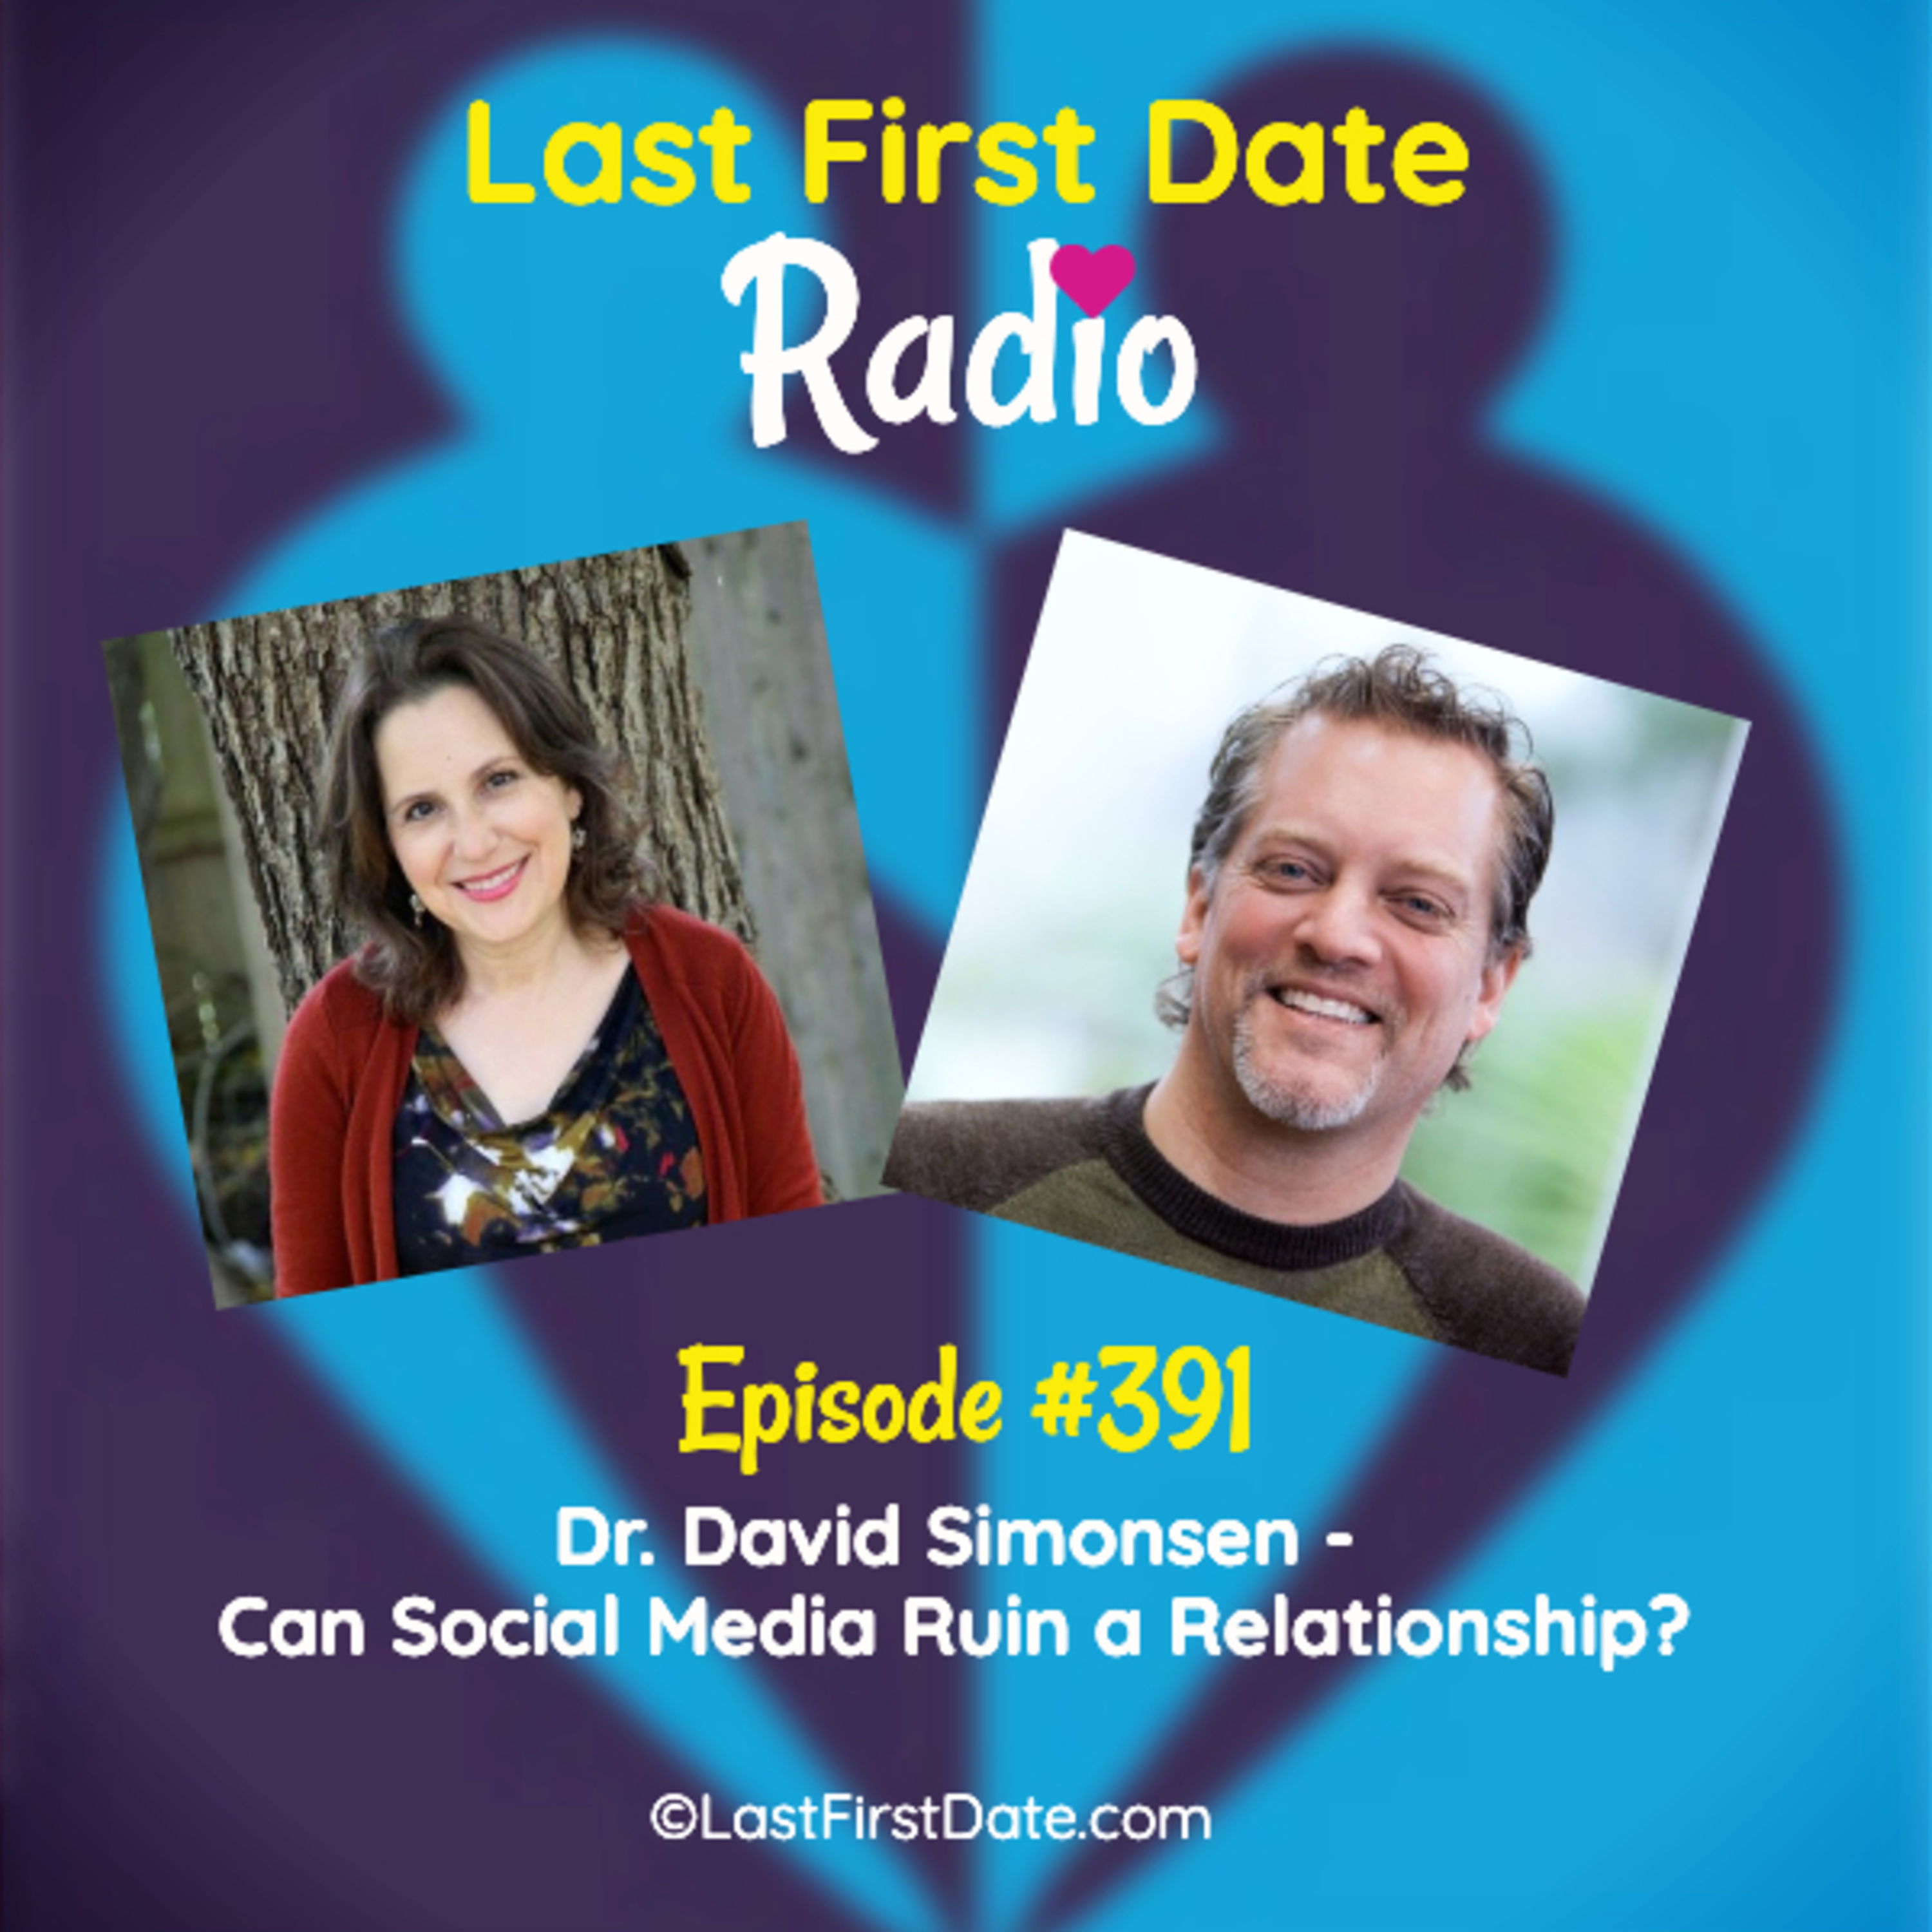 Last First Date Radio - EP 391: Dr. David Simonsen - Can Social Media Ruin a Relationship?